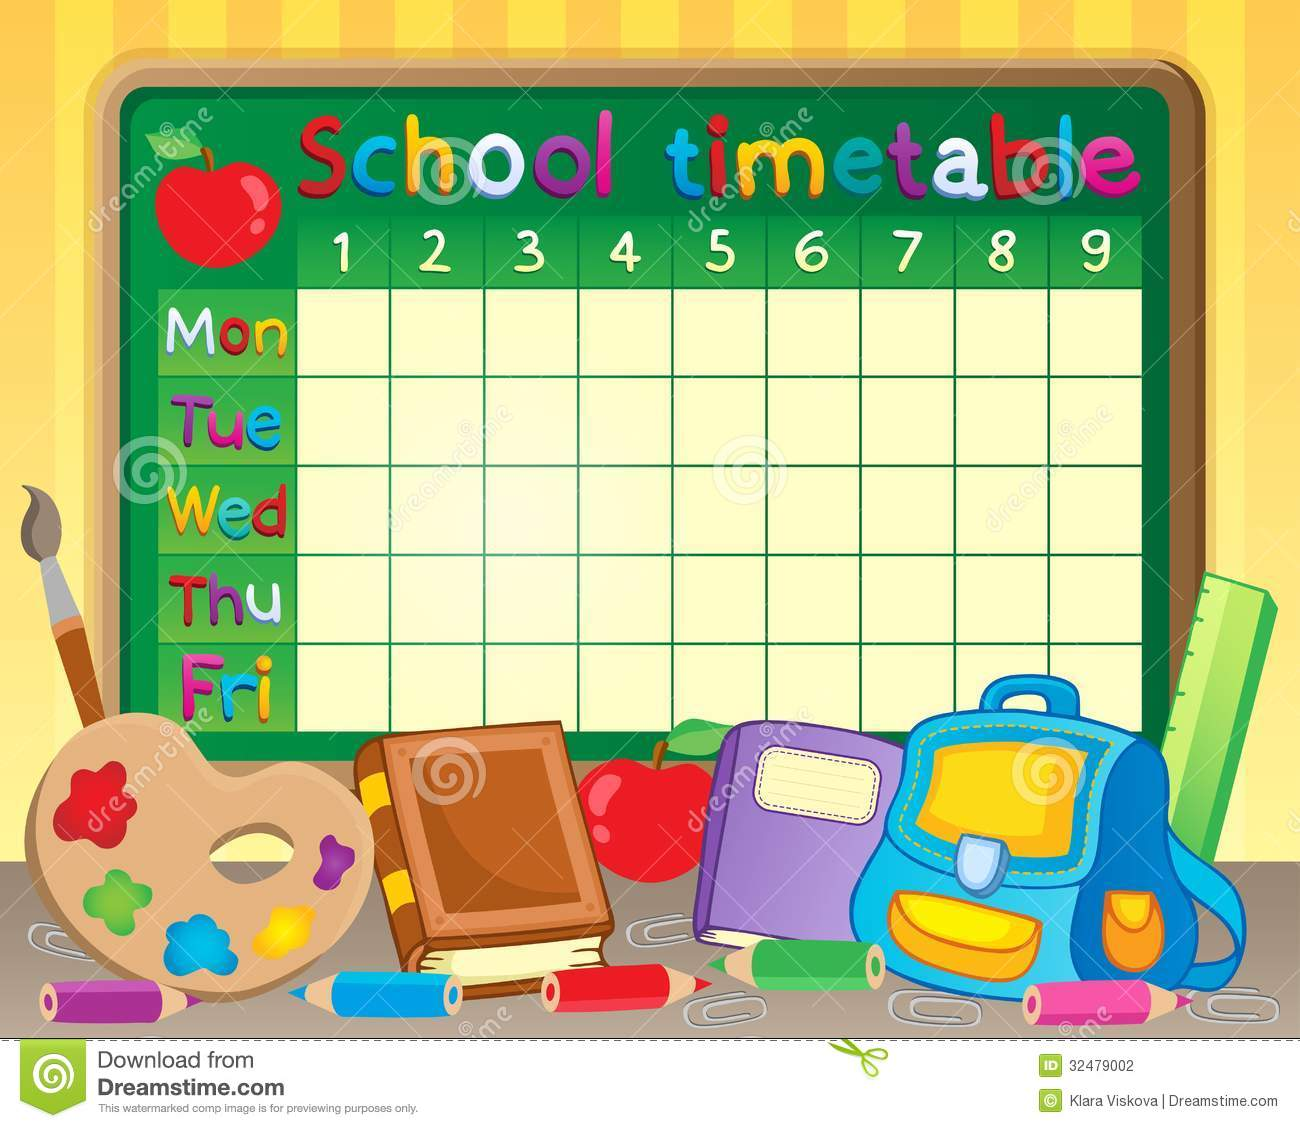 School Timetable Photo Image 20770810 – School Time Table Designs